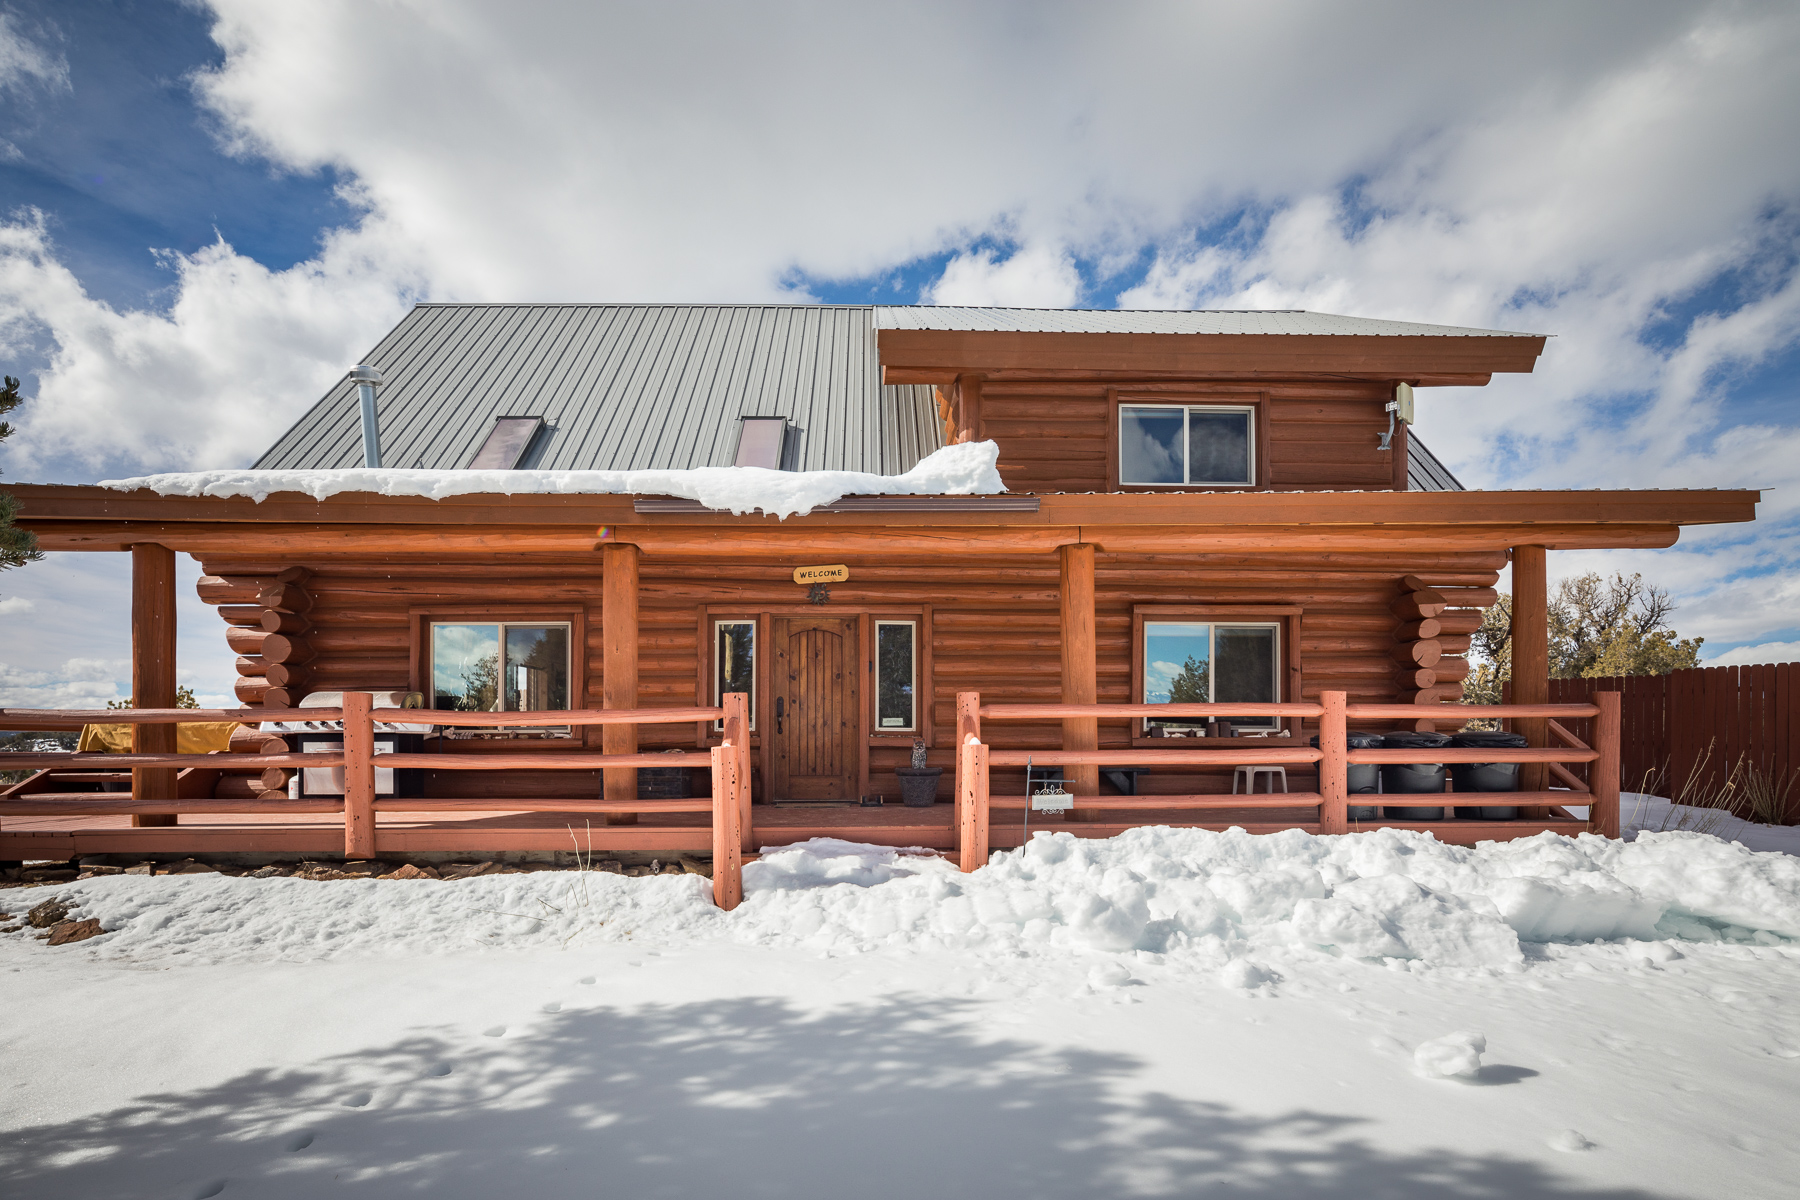 Single Family Home for Sale at 11245 Road 20 11245 Road 20 Cortez, Colorado 81321 United States